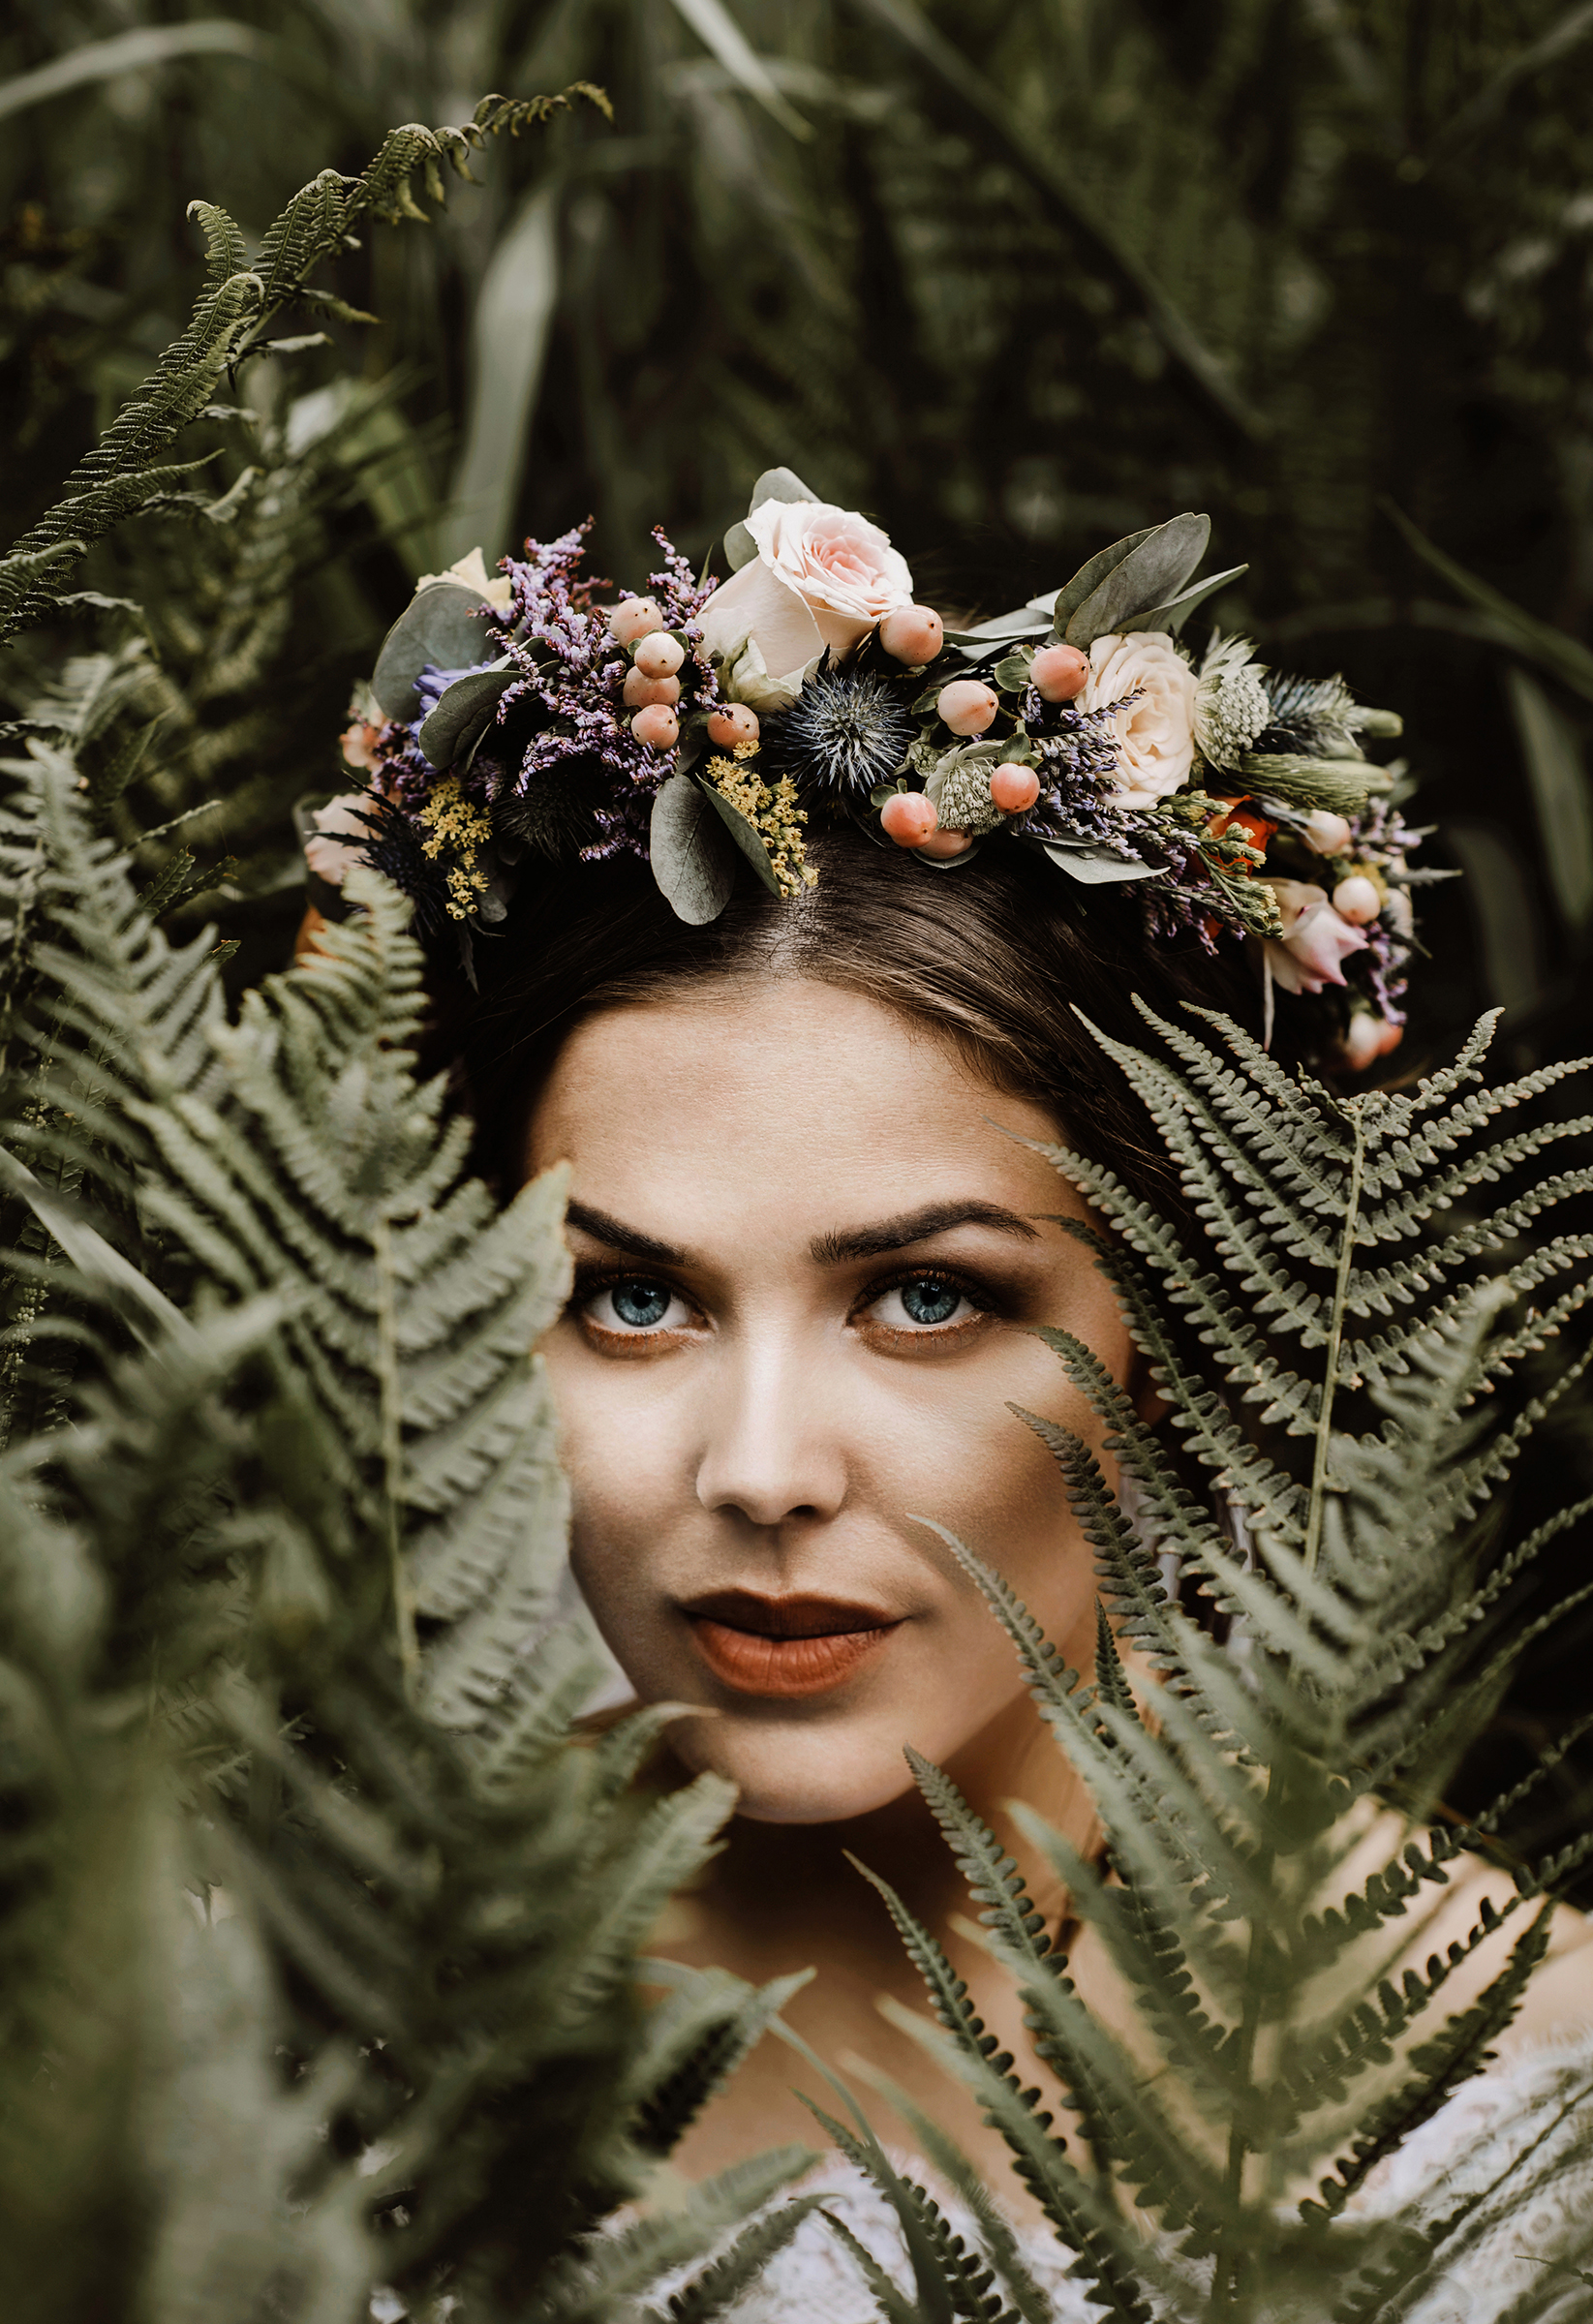 Bride with crown of flowers through the ferns - photo by Frøydis